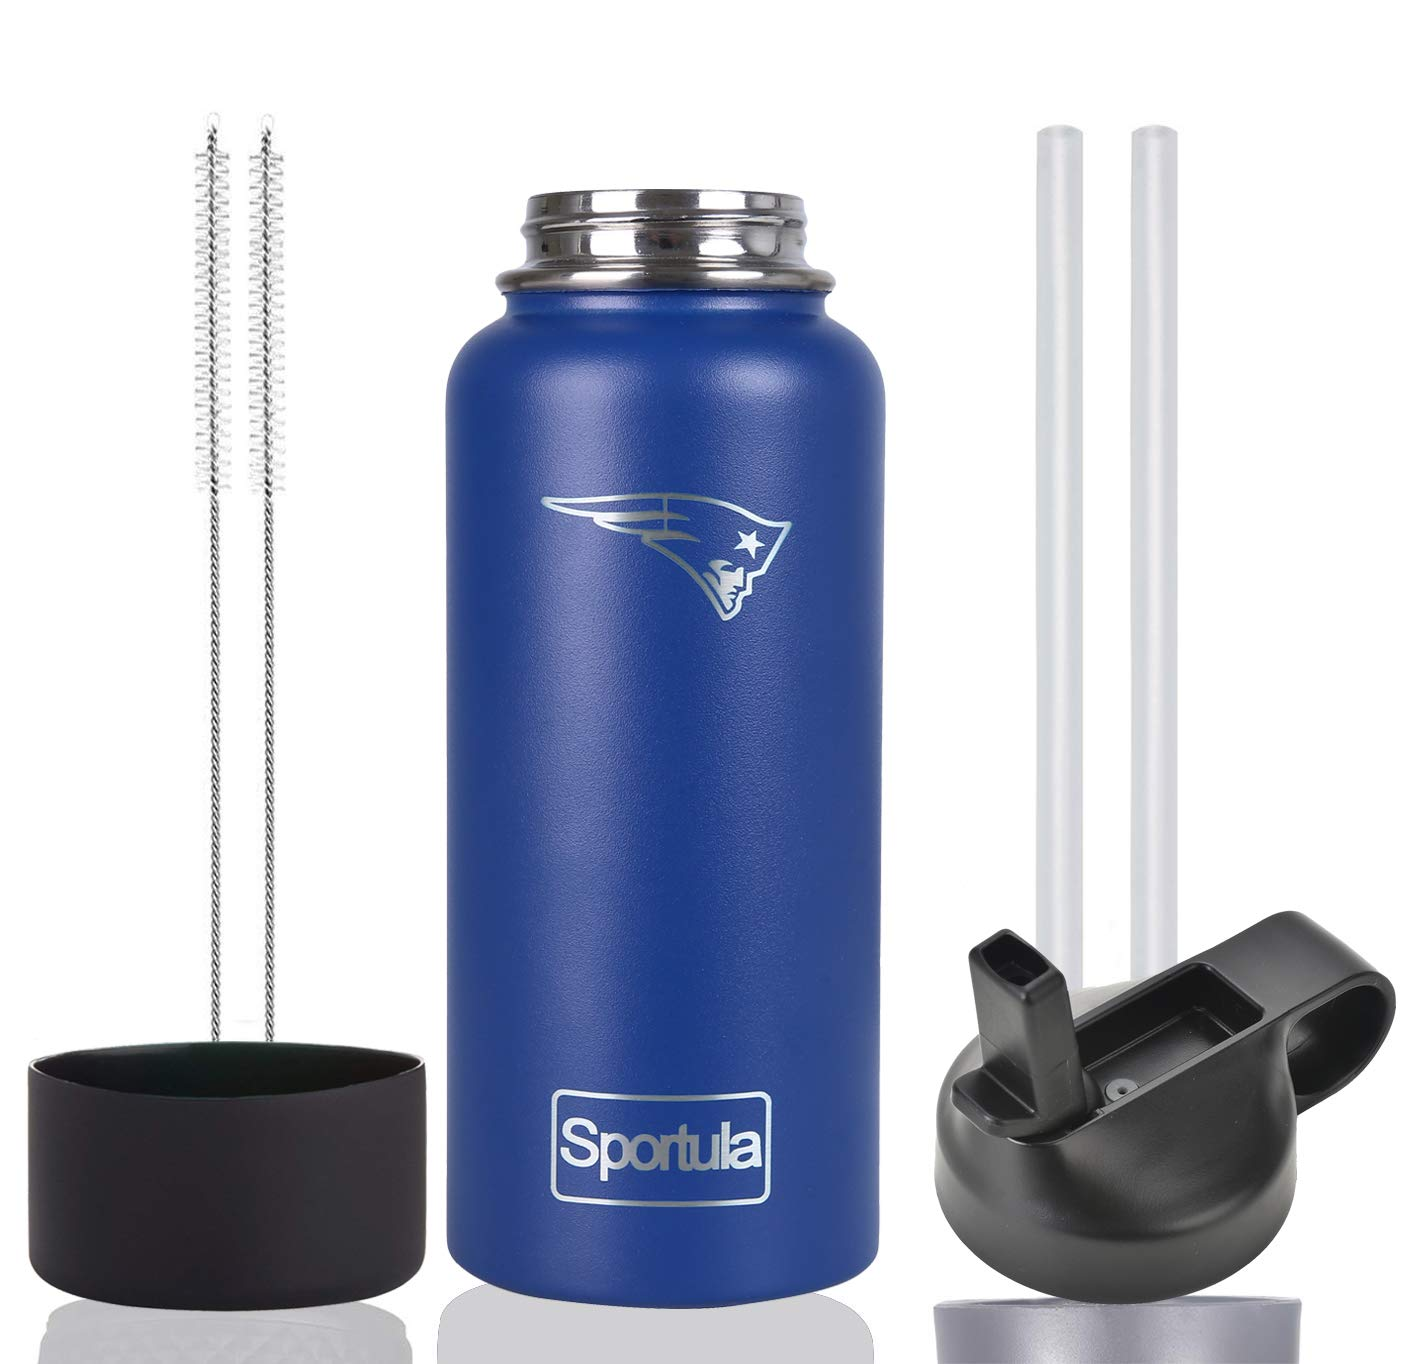 Sportula NFL 40 oz Water Bottle - Stainless Steel & Vacuum Insulated - Wide Mouth with Straw Lid - 2 Straws & 2 Brushes and 1 Protective Boot (Cobalt New England Patriots) by Sportula